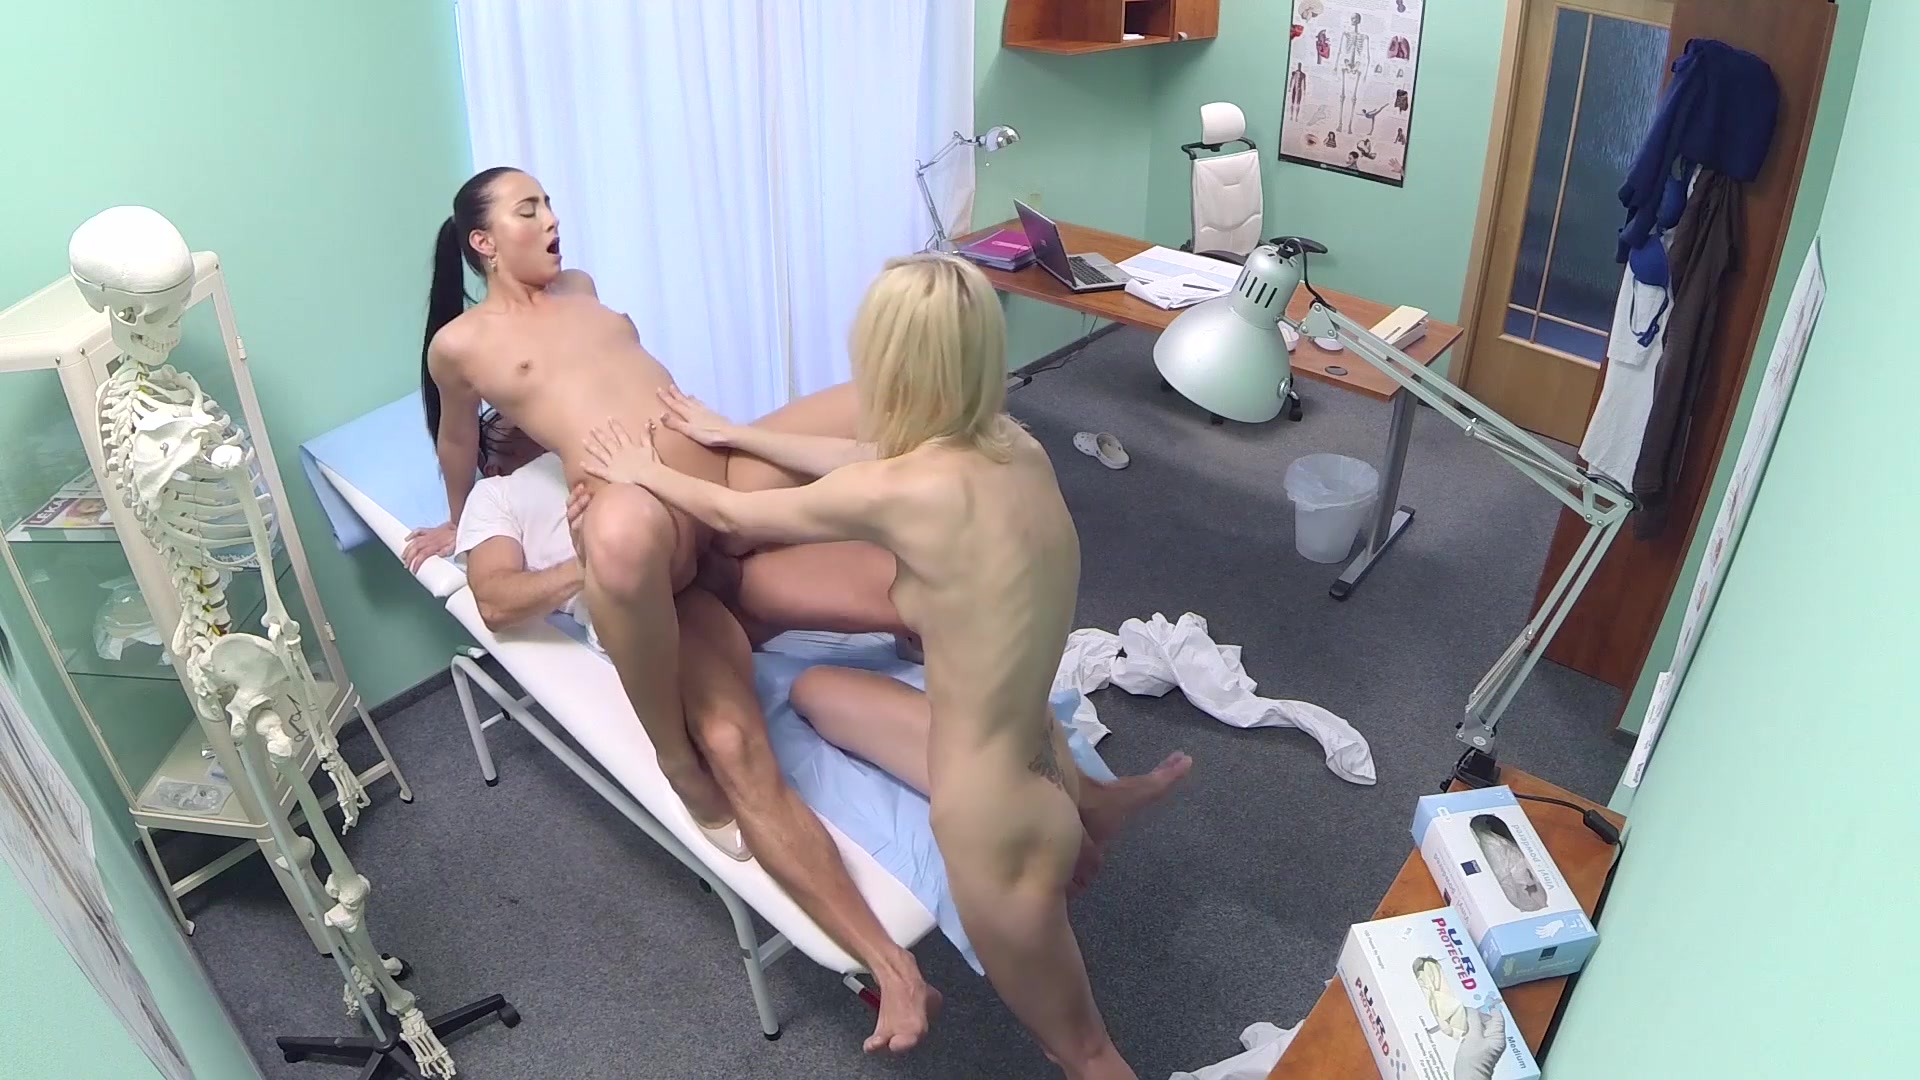 Teen Adult movie nurse Faced with